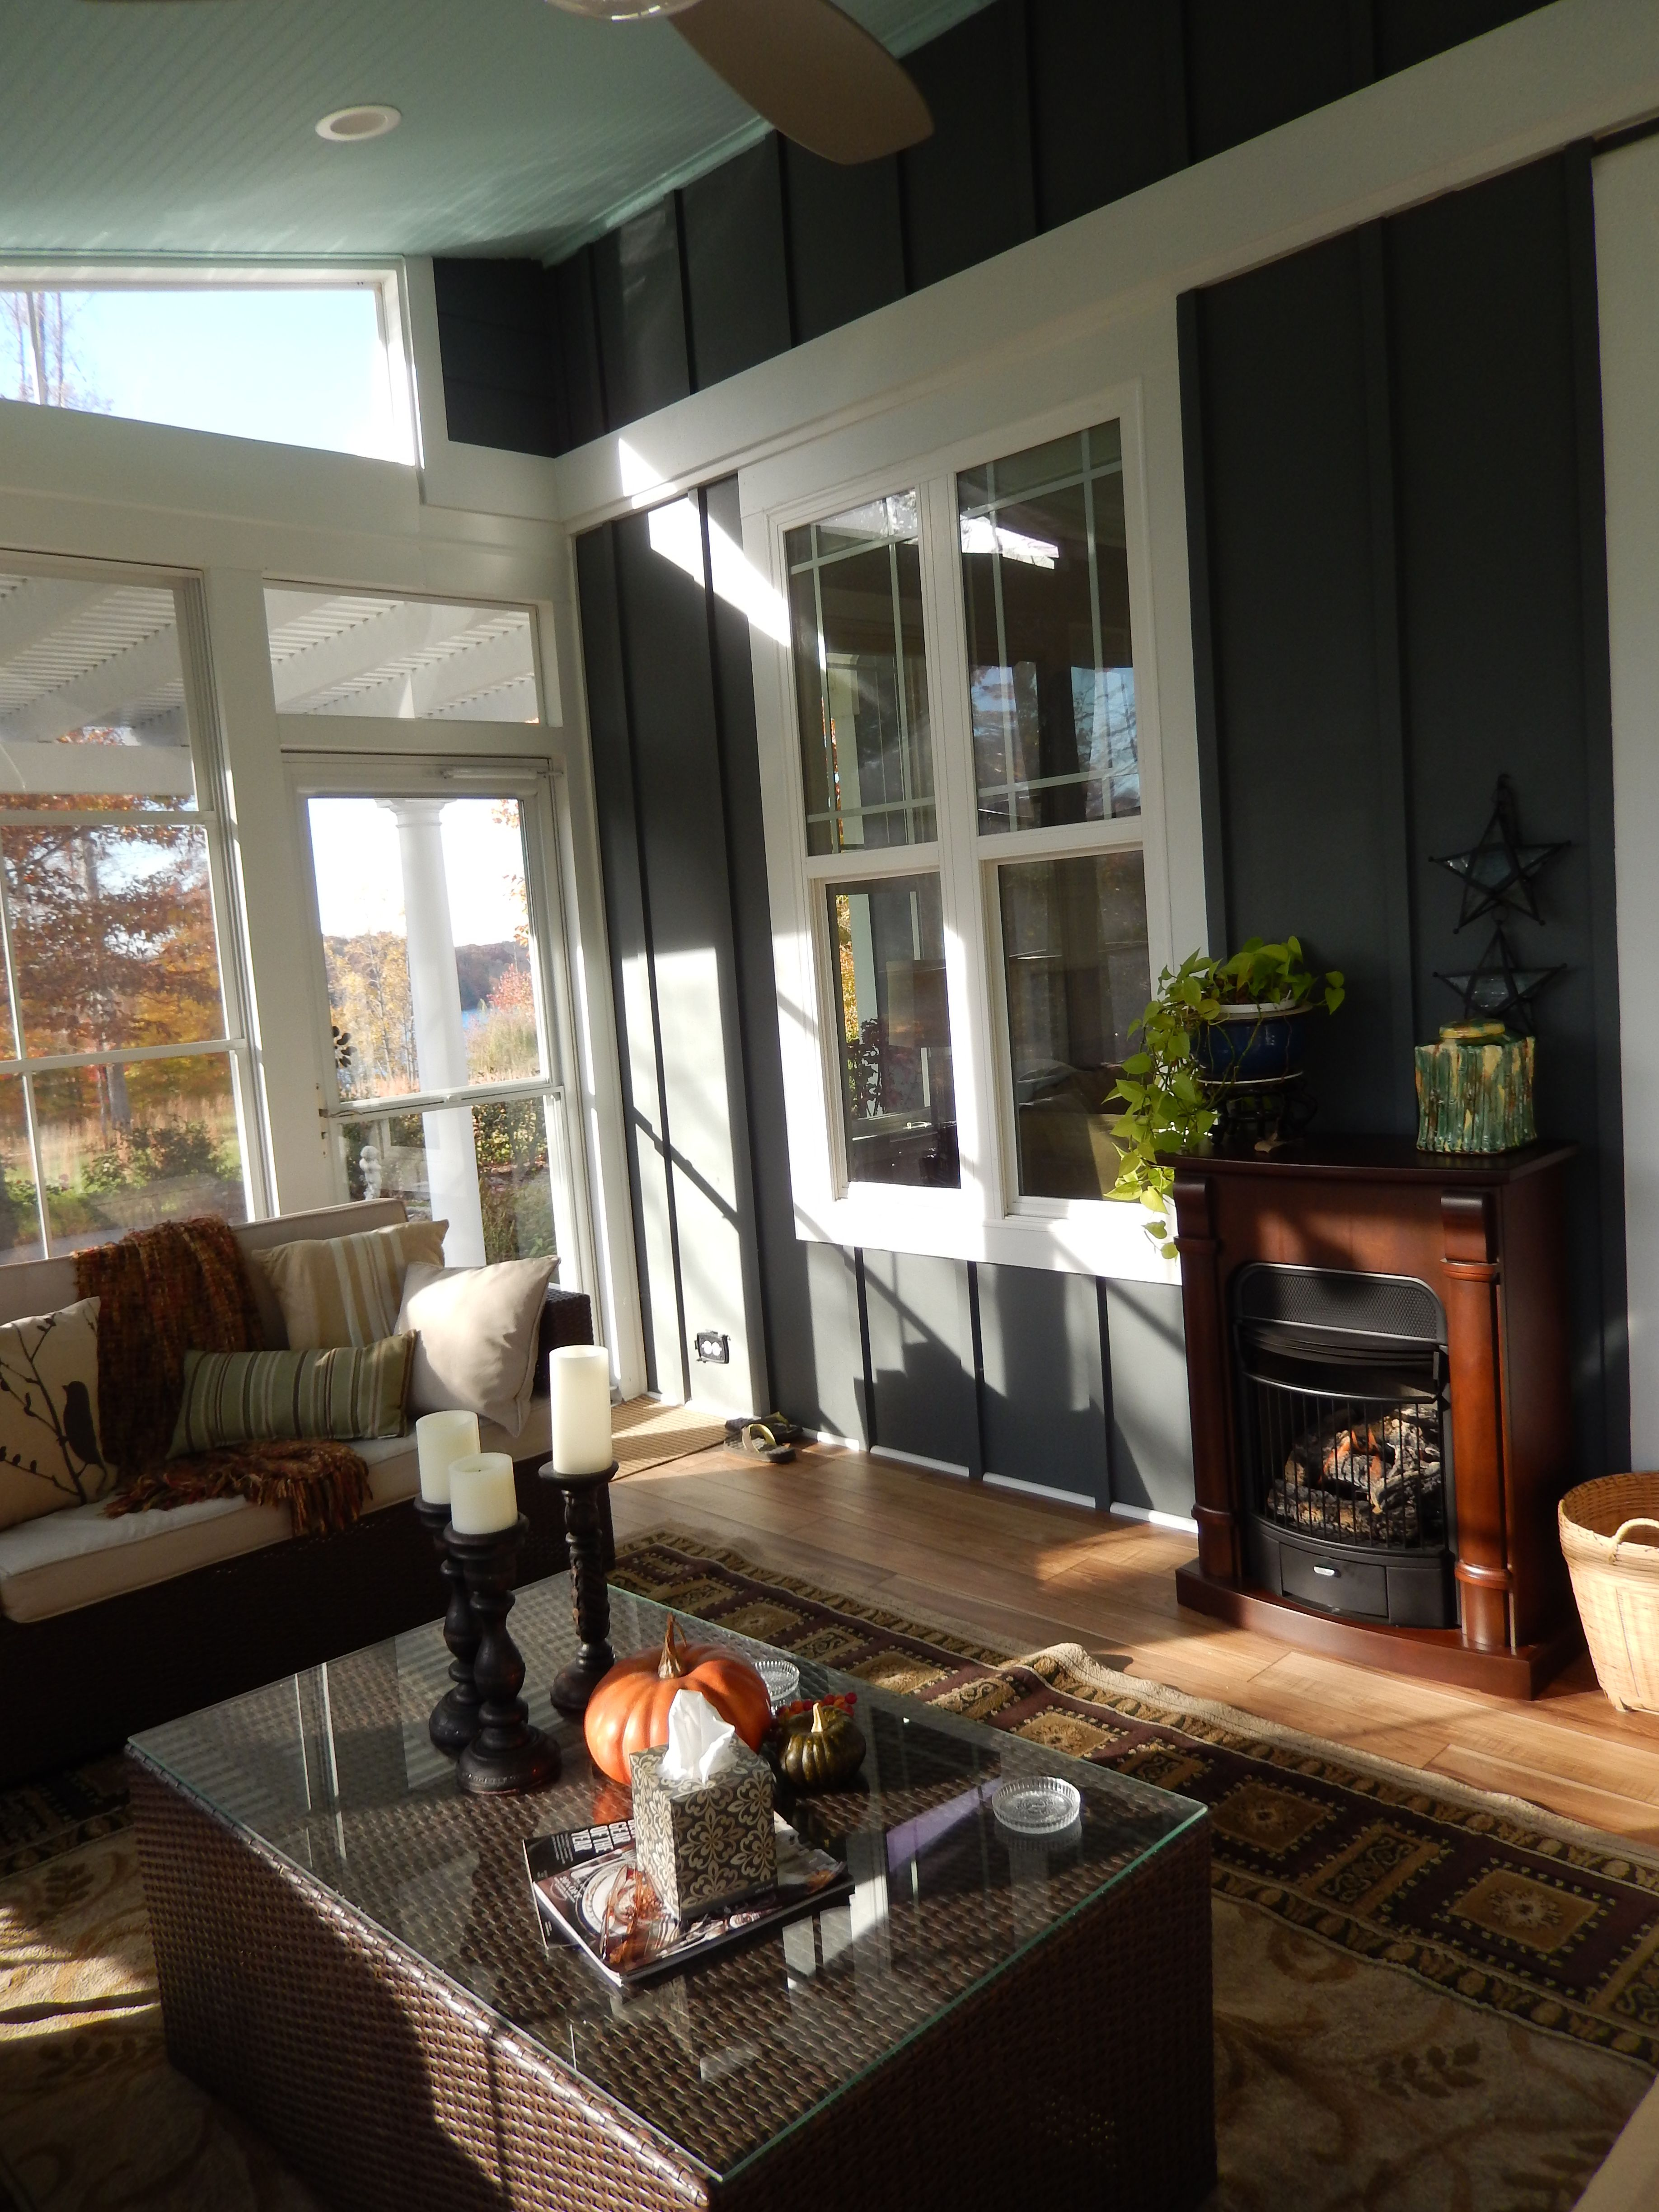 Sunroom using eze breeze windows with finished interior plus a fireplace shed roof ceiling is